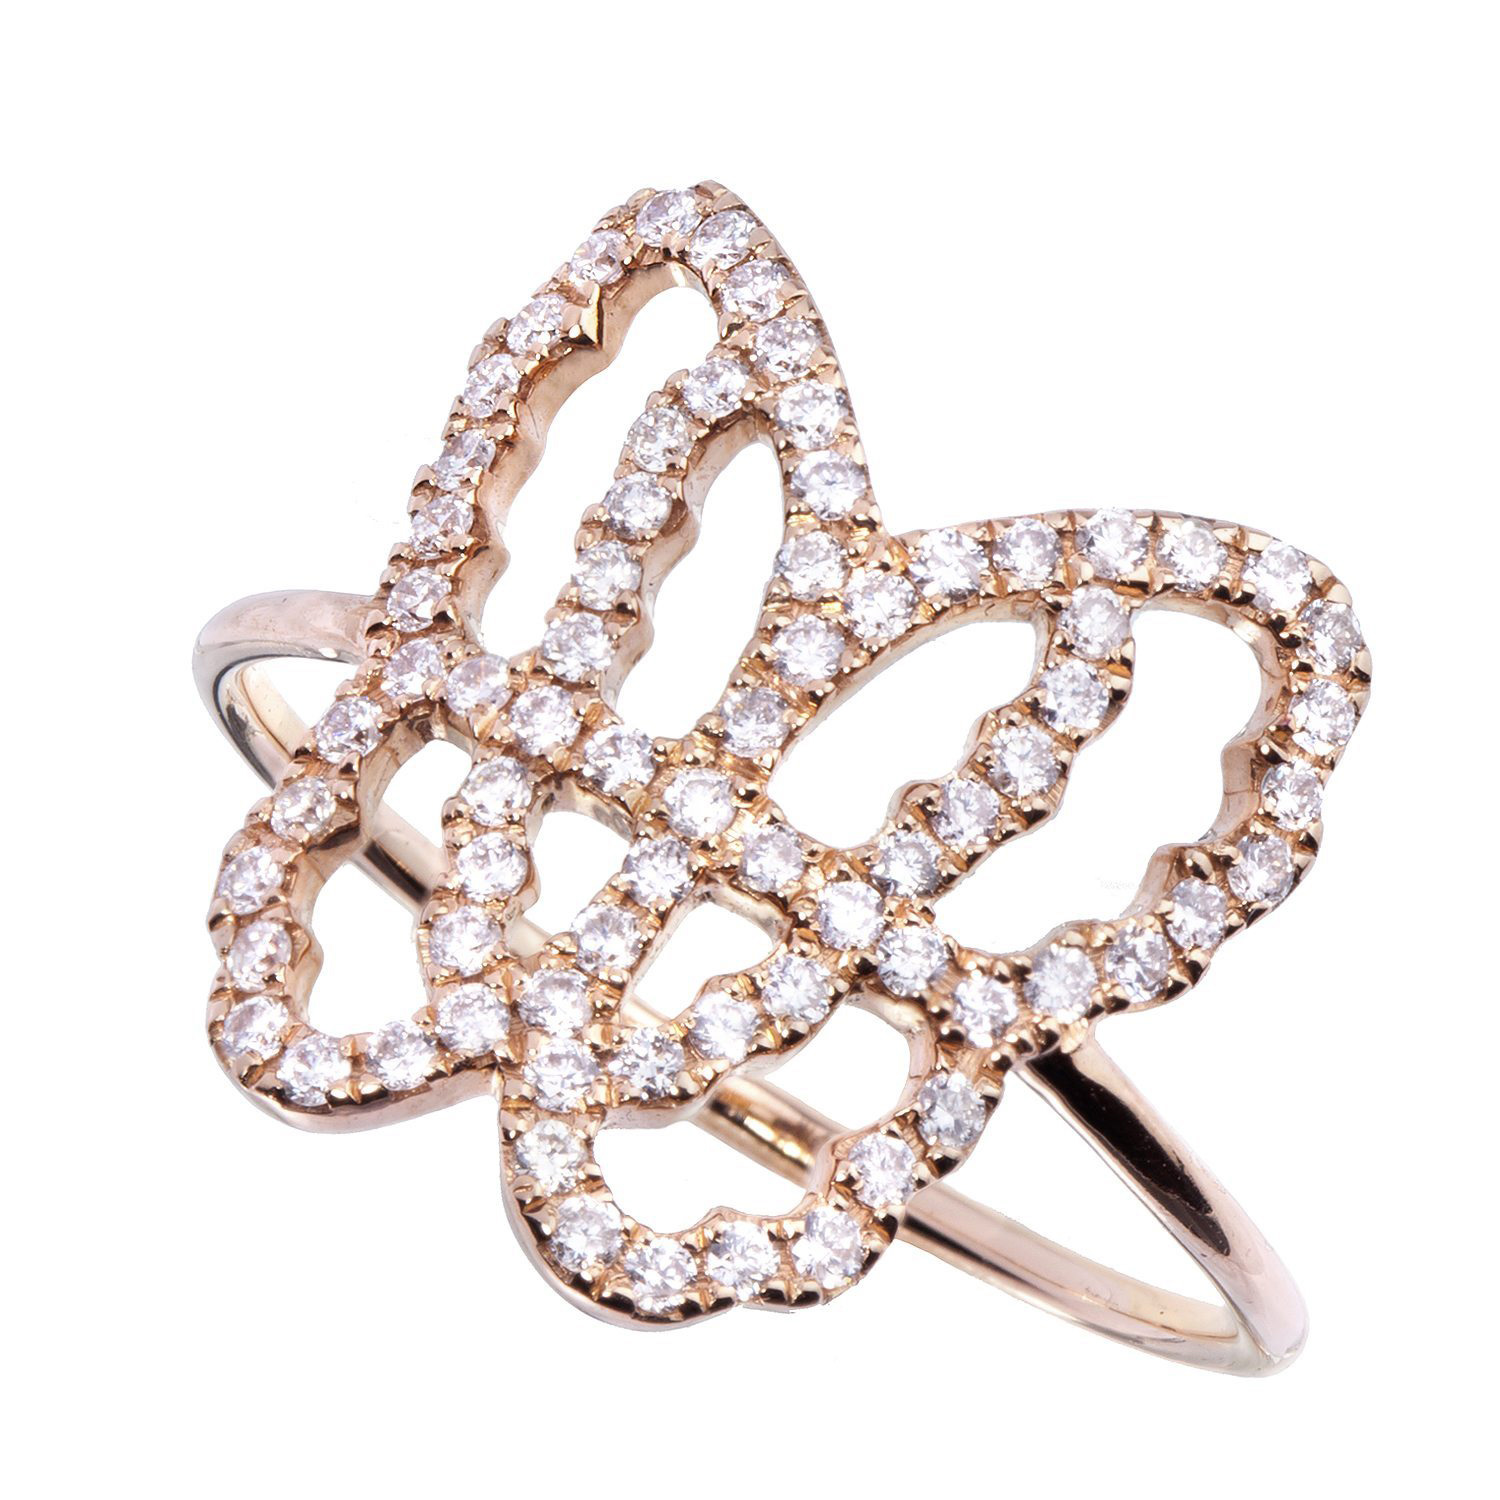 Bague papillon Or Rose sertie Diamants